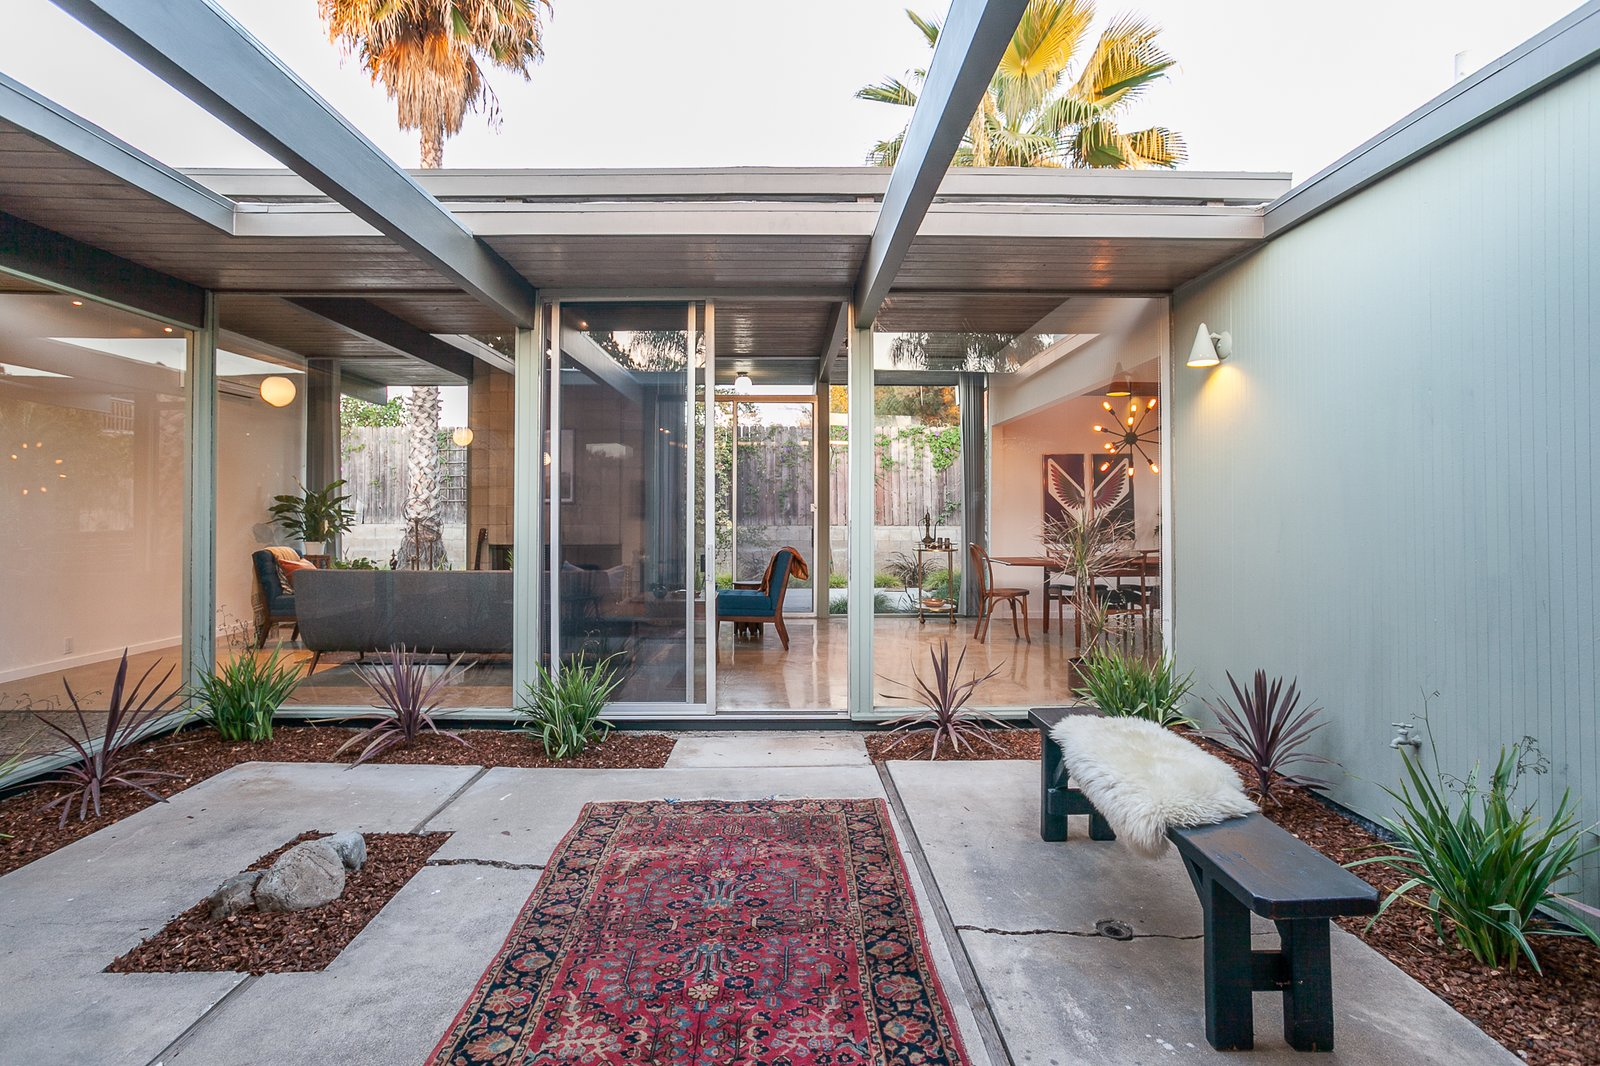 An Updated Eichler With an Indoor-Outdoor Master Bath Seeks $1.15M